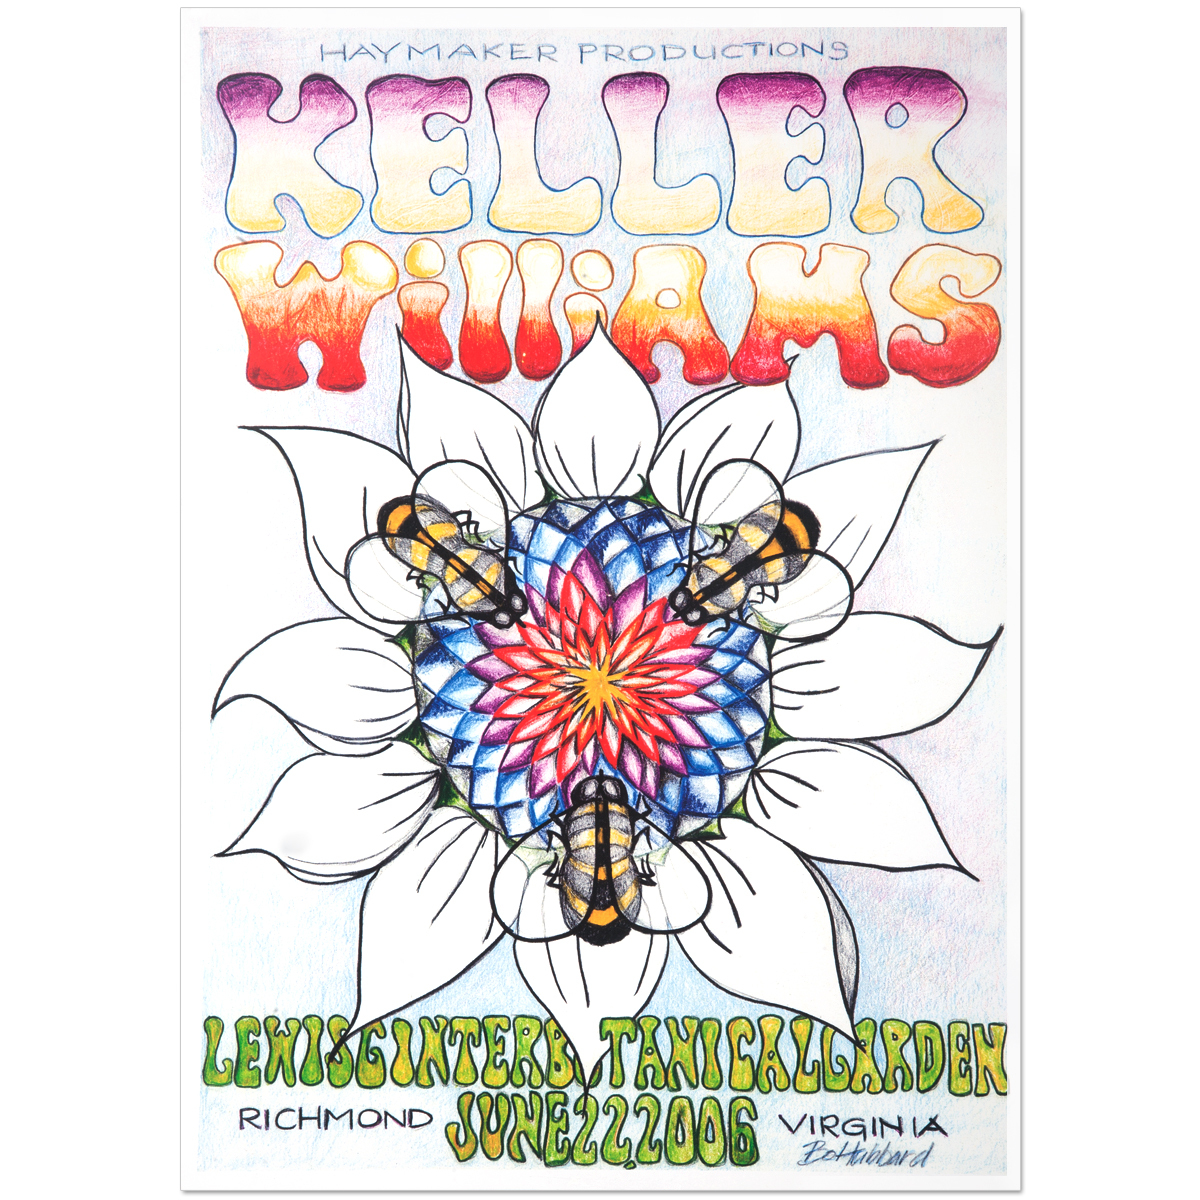 Keller Williams Richmond, VA 06/22/06 Event Poster